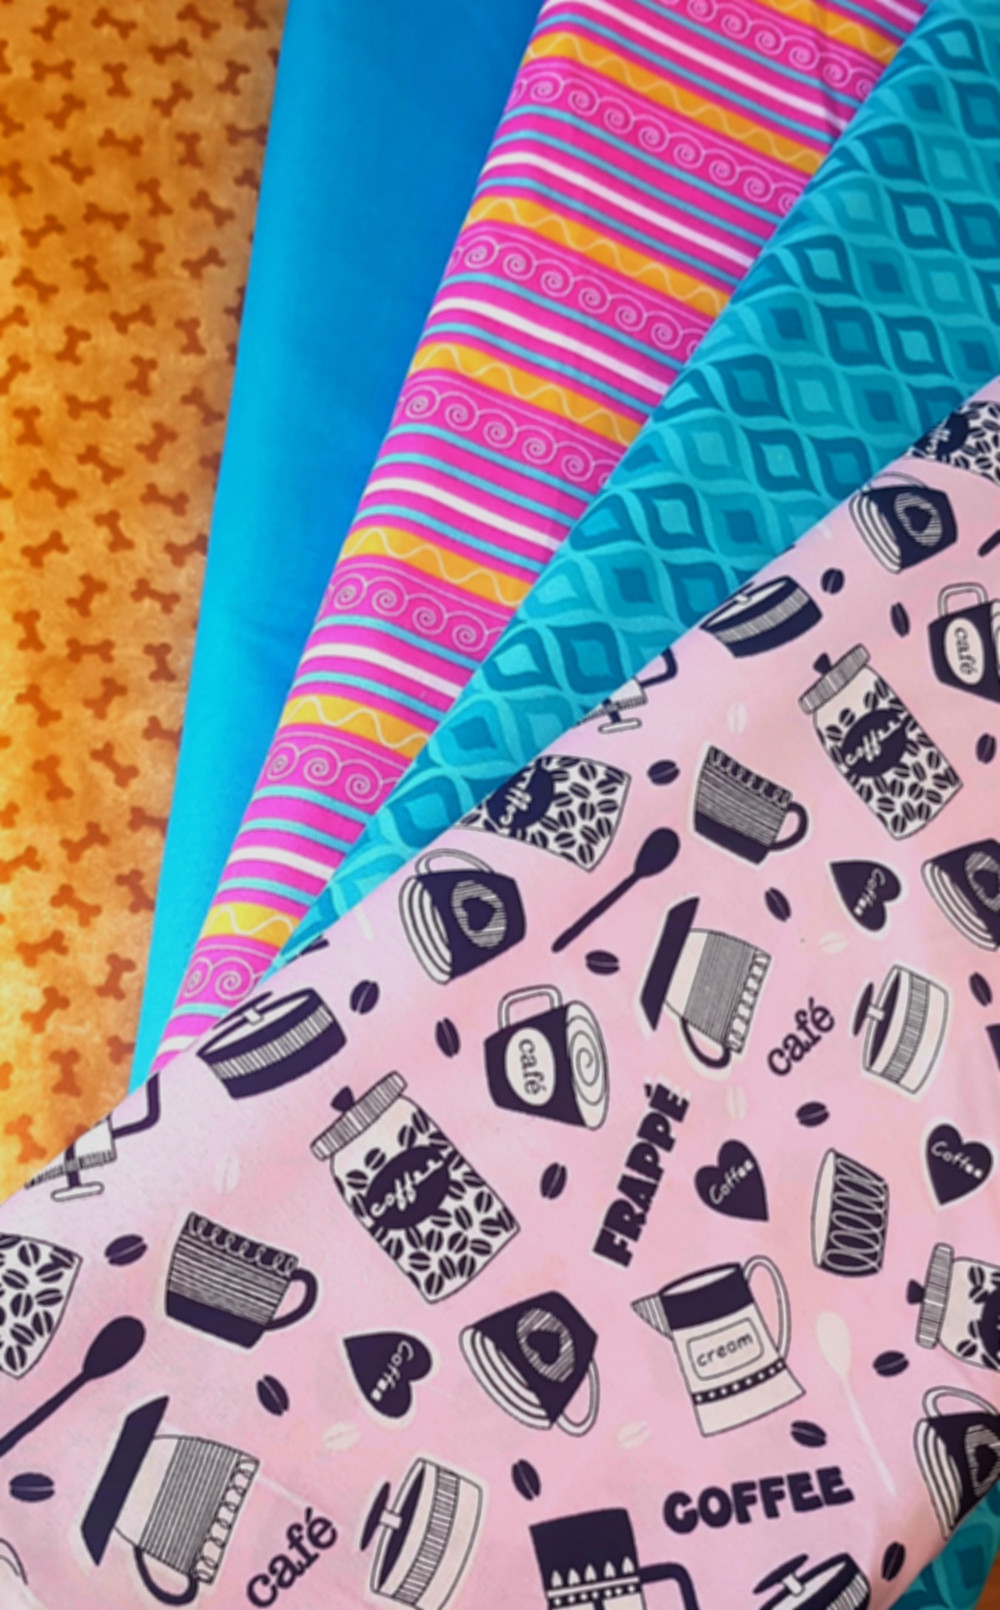 Vibrant cotton fabrics suitable for face-masks and general projects.